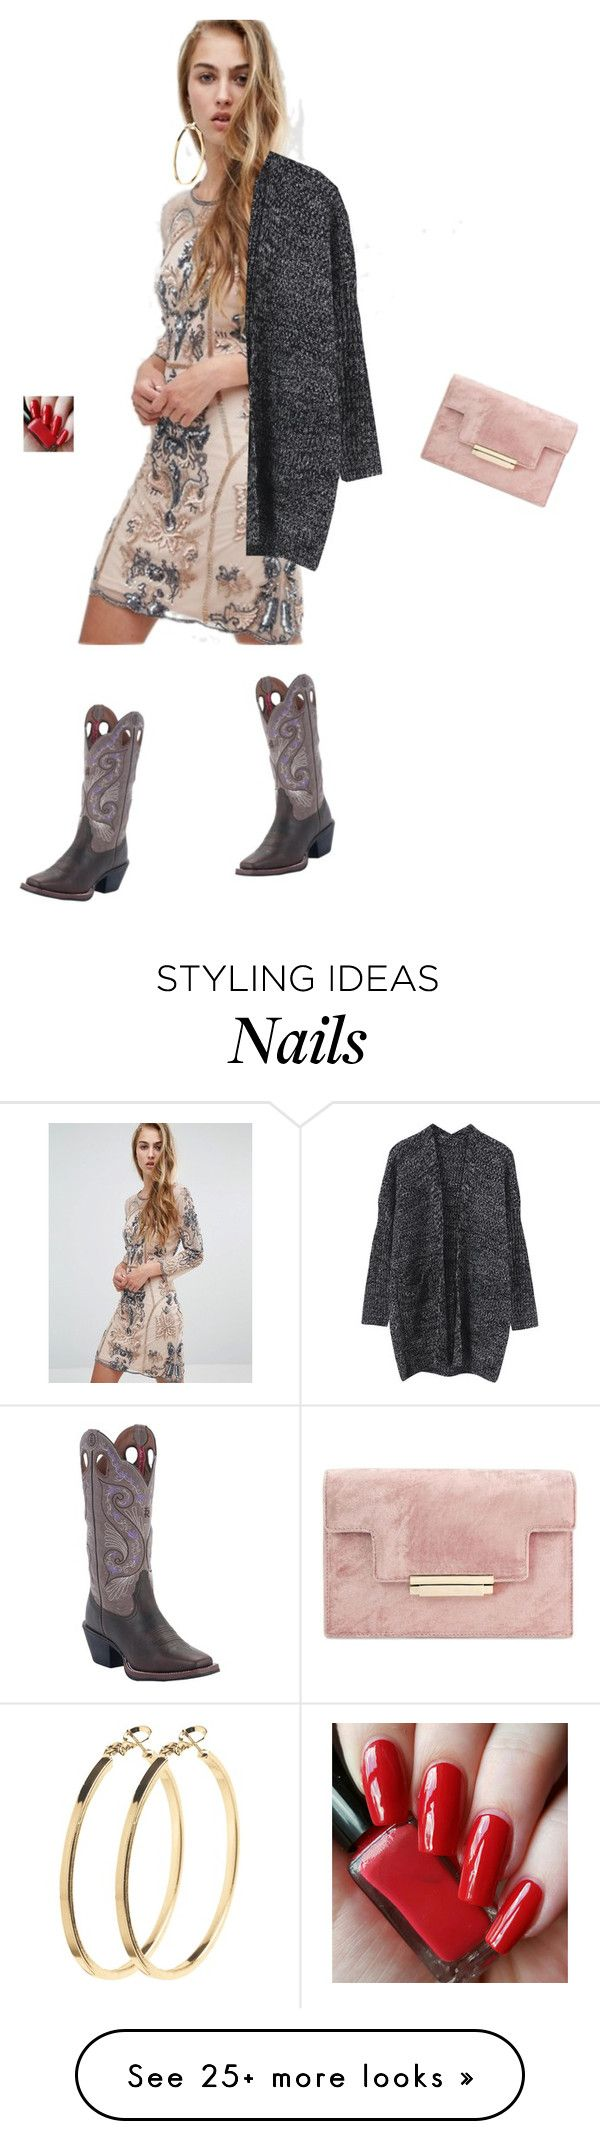 """""""Untitled #3174"""" by ayse-sedetmen on Polyvore featuring Miss Selfridge, Tony Lama and Pieces"""